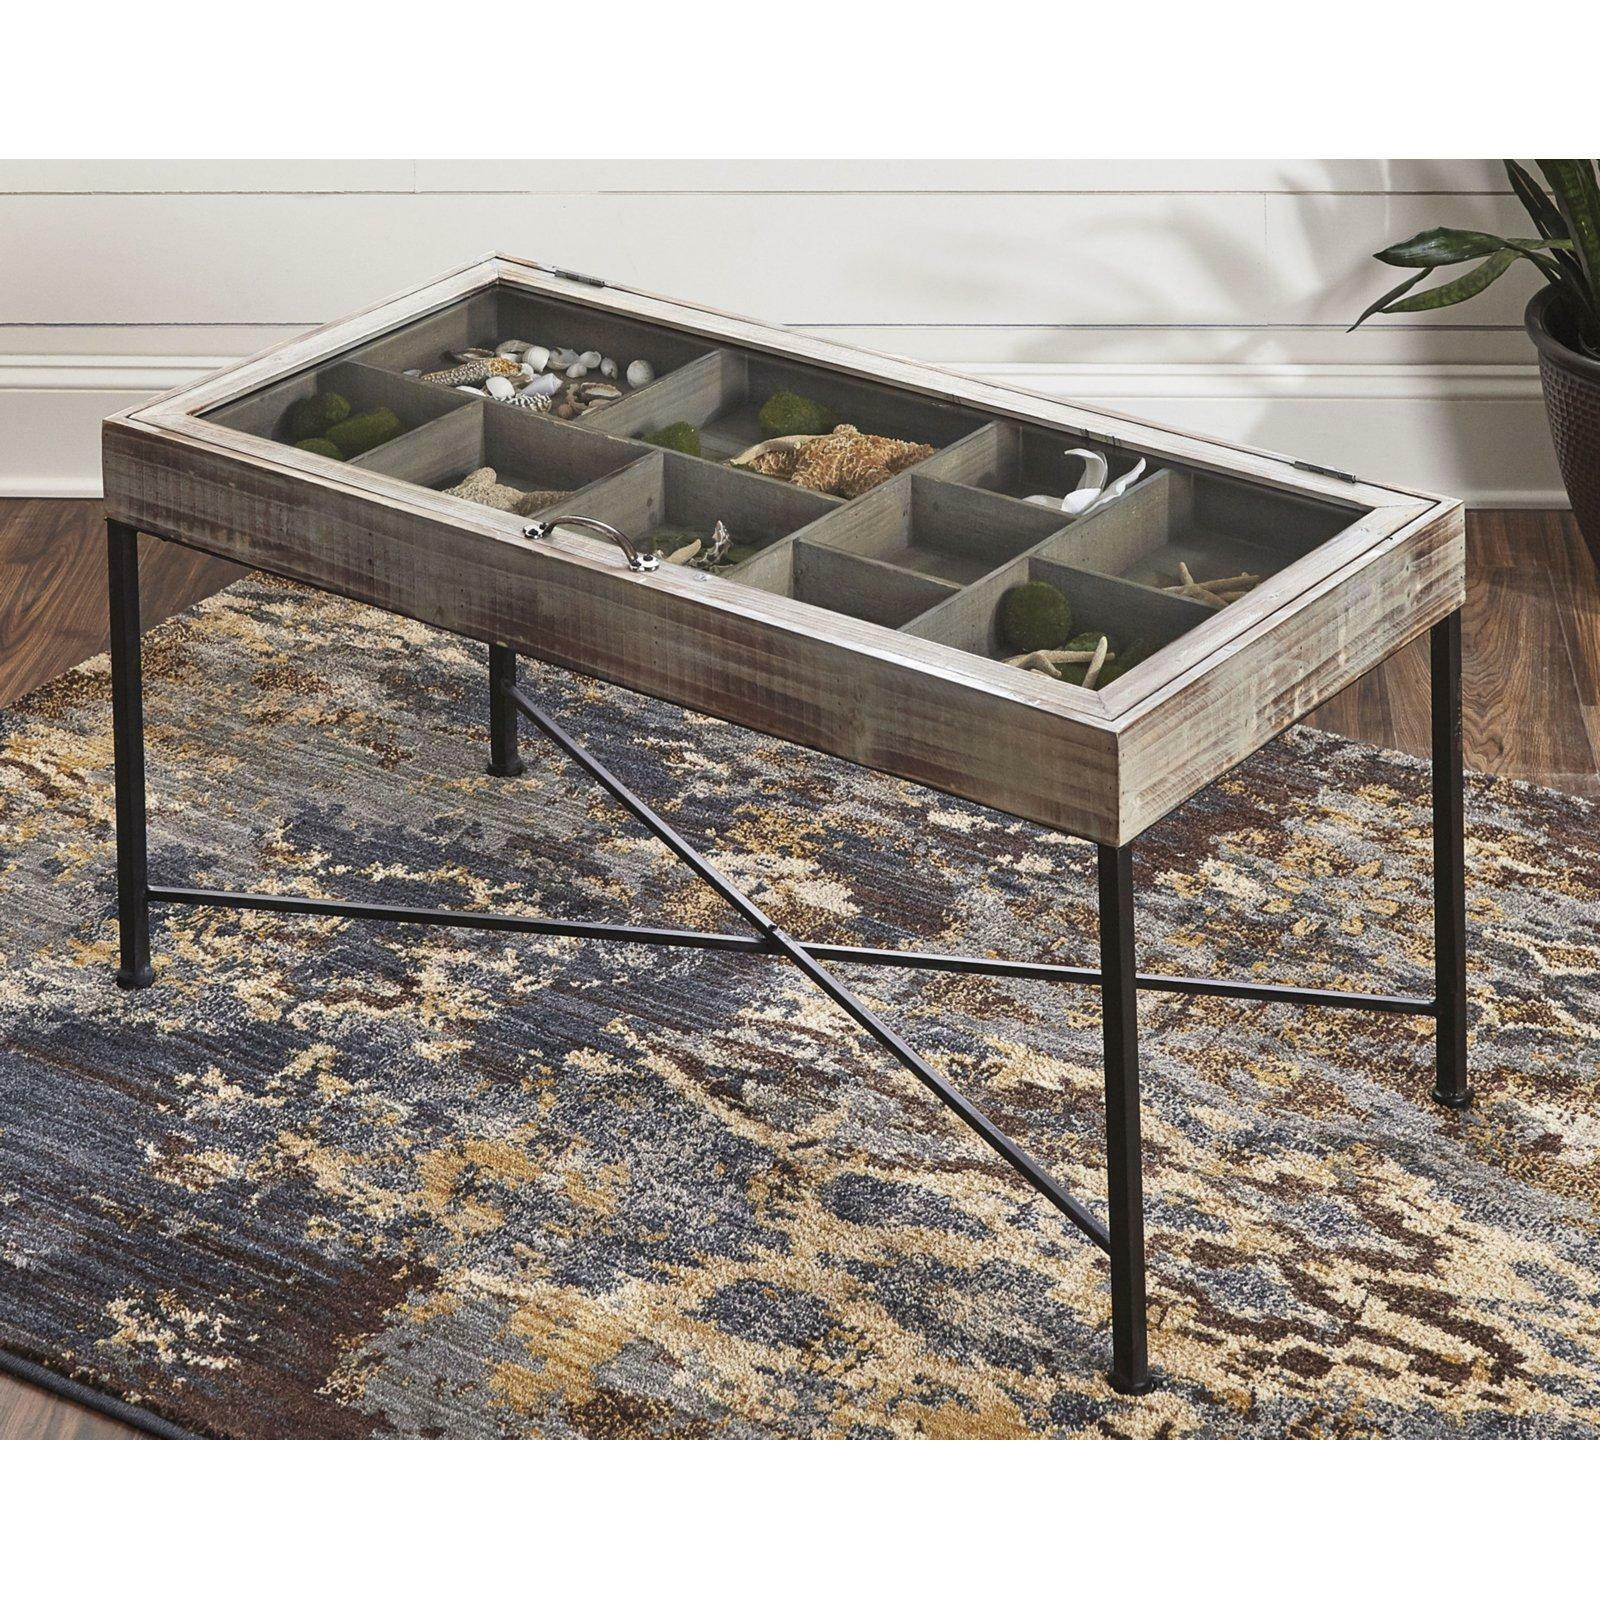 Grey LeisureMod Randolph Modern Accent End Table Side Table